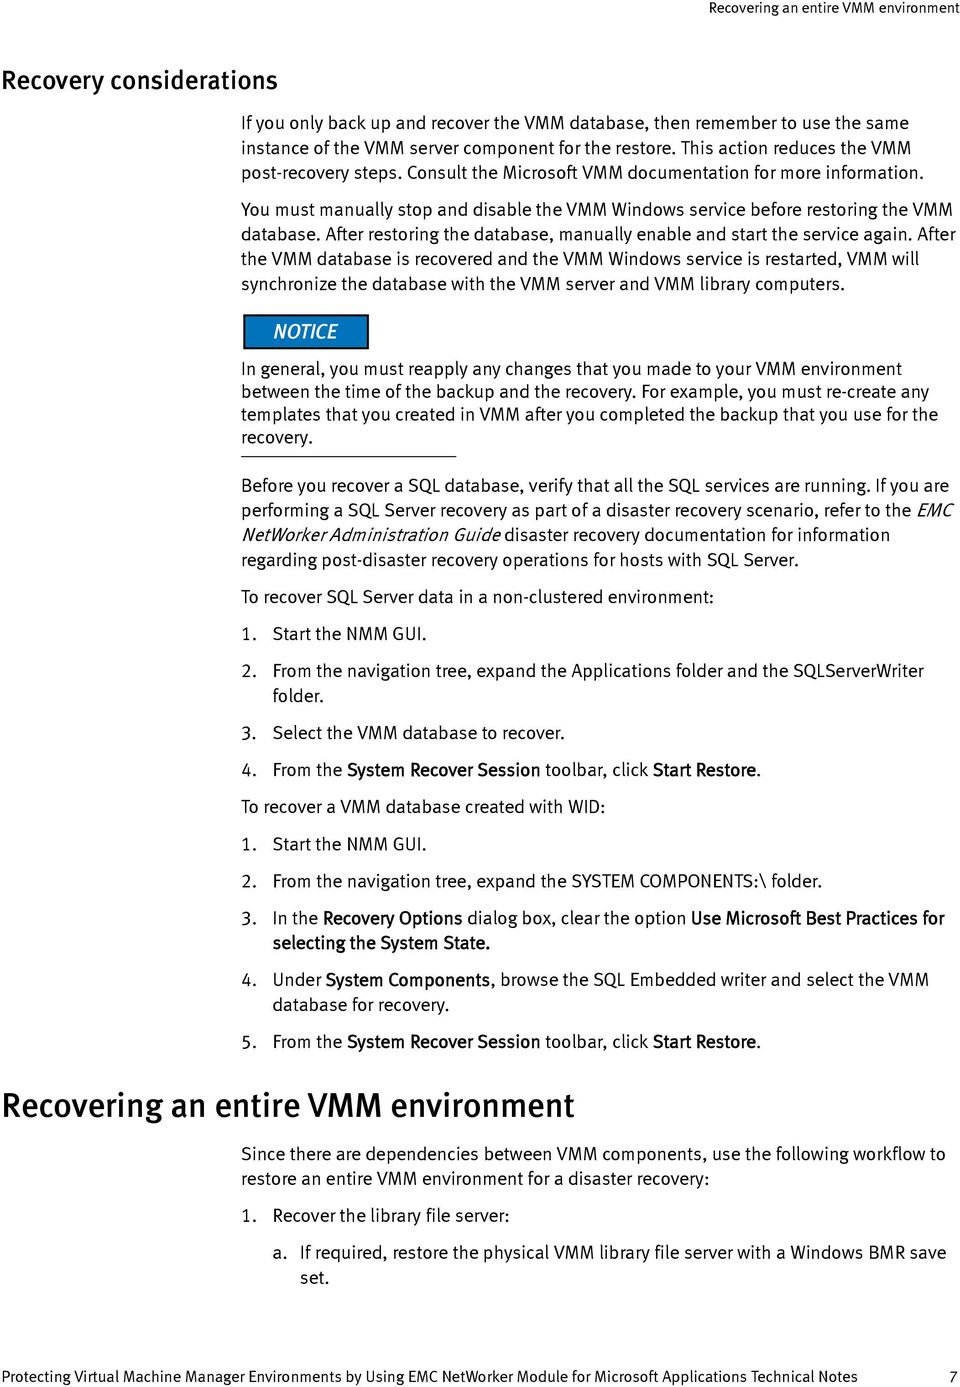 You must manually stop and disable the VMM Windows service before restoring the VMM database. After restoring the database, manually enable and start the service again.